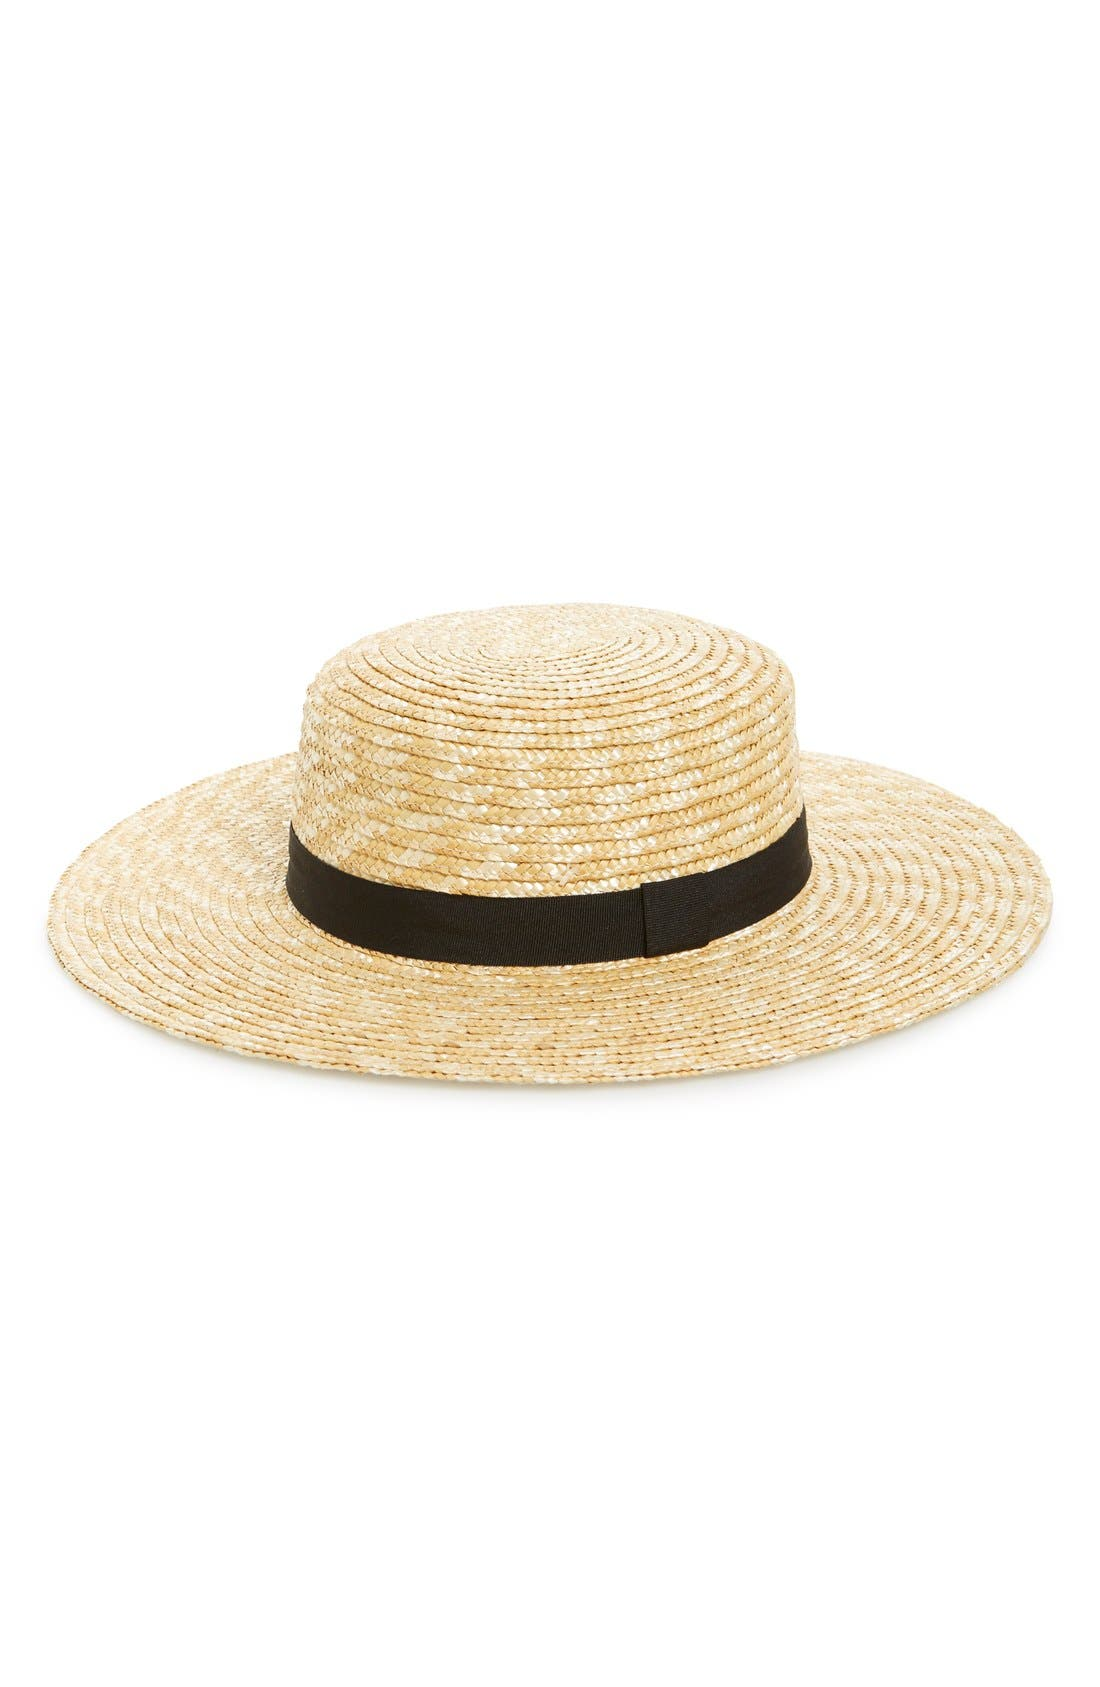 Straw Boater Hat,                         Main,                         color,